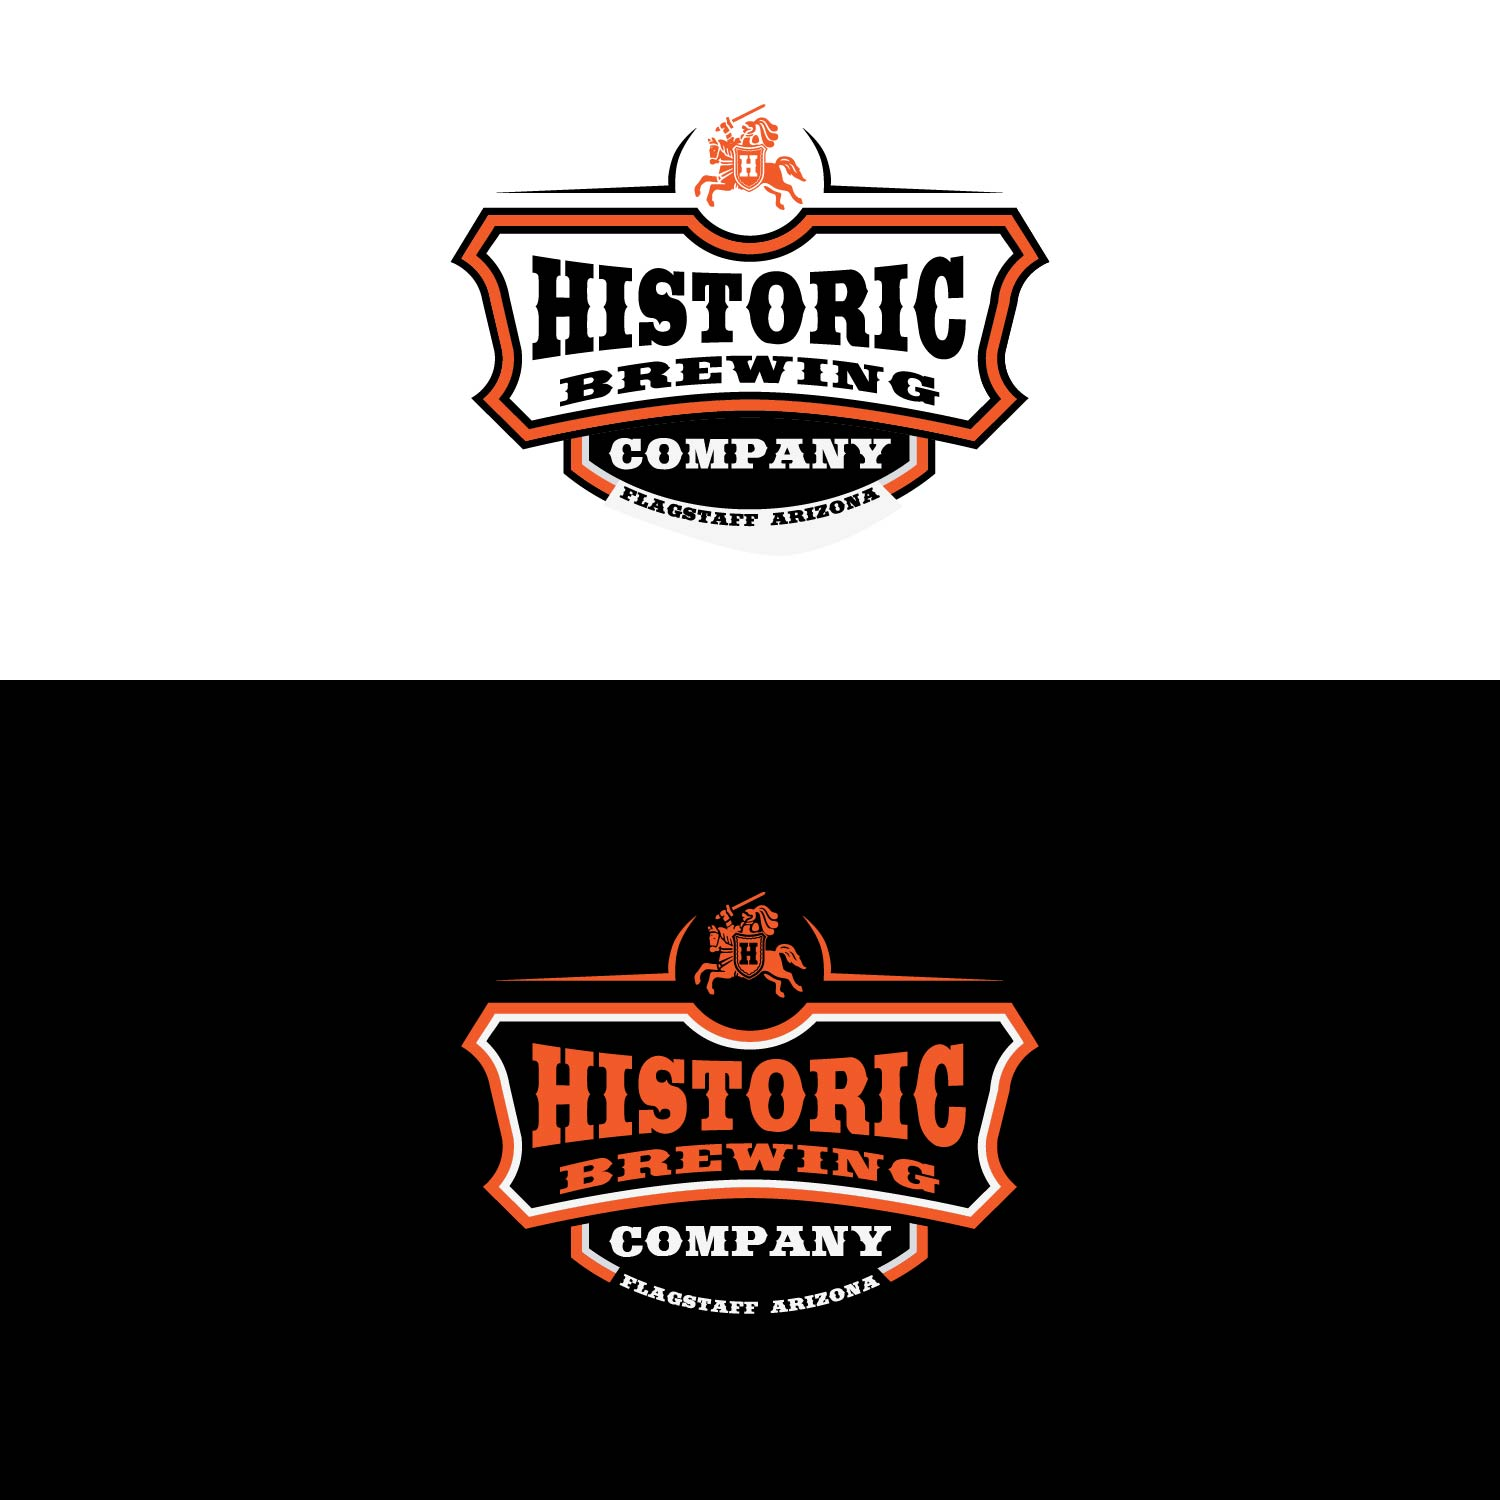 Logo Design by lagalag - Entry No. 76 in the Logo Design Contest Unique Logo Design Wanted for Historic Brewing Company.